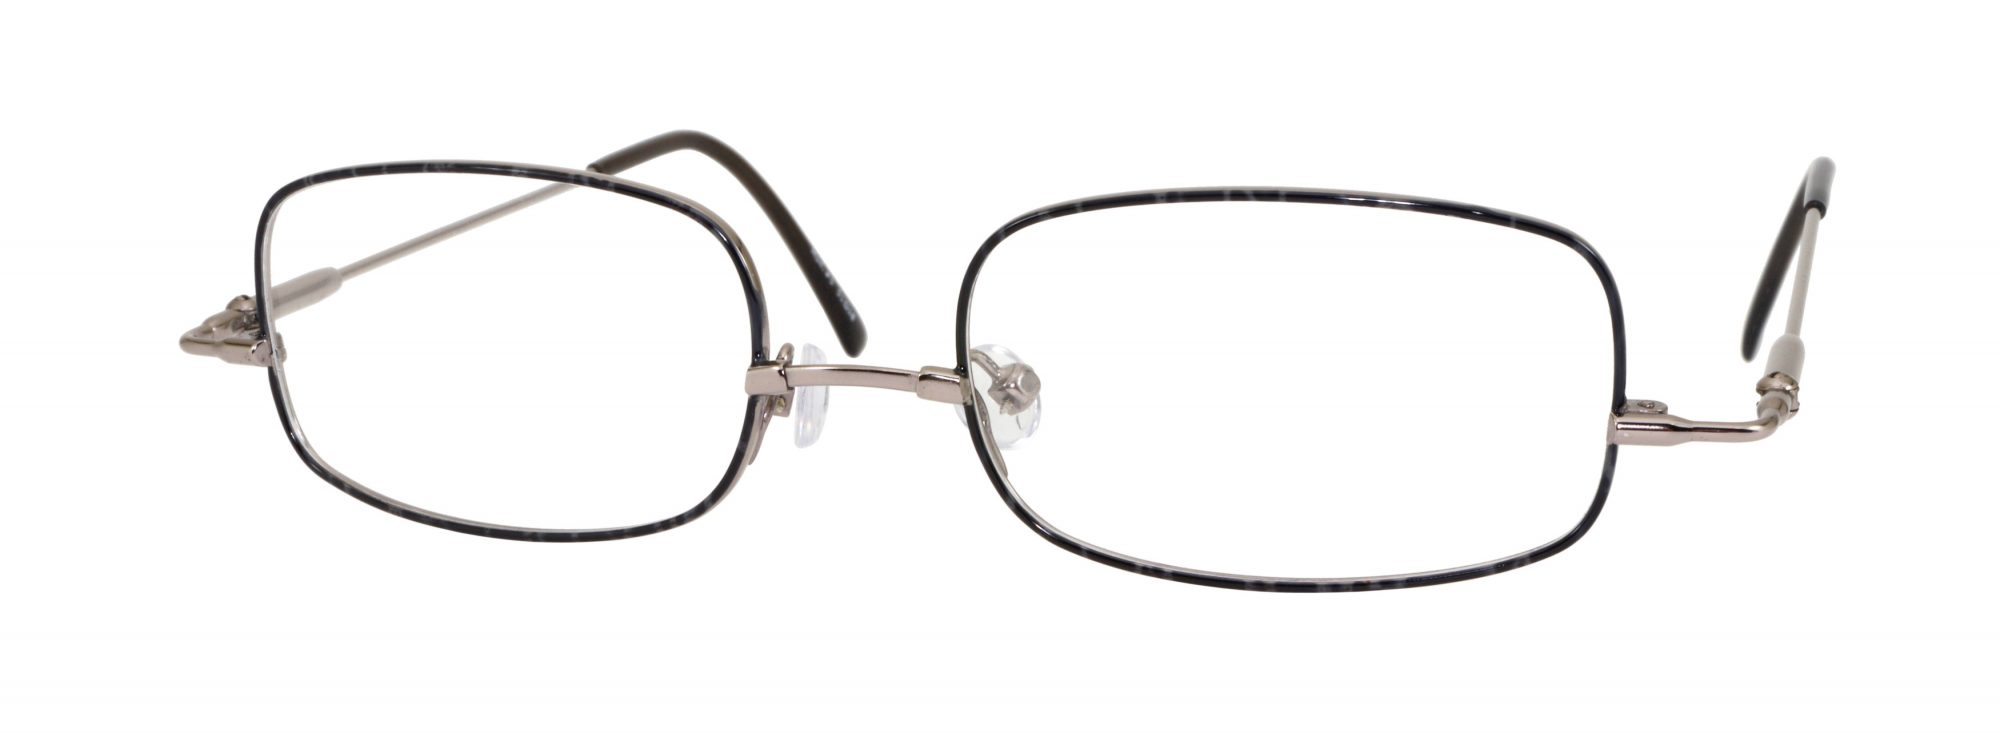 Erin's World frame style number EW-05 in black demi